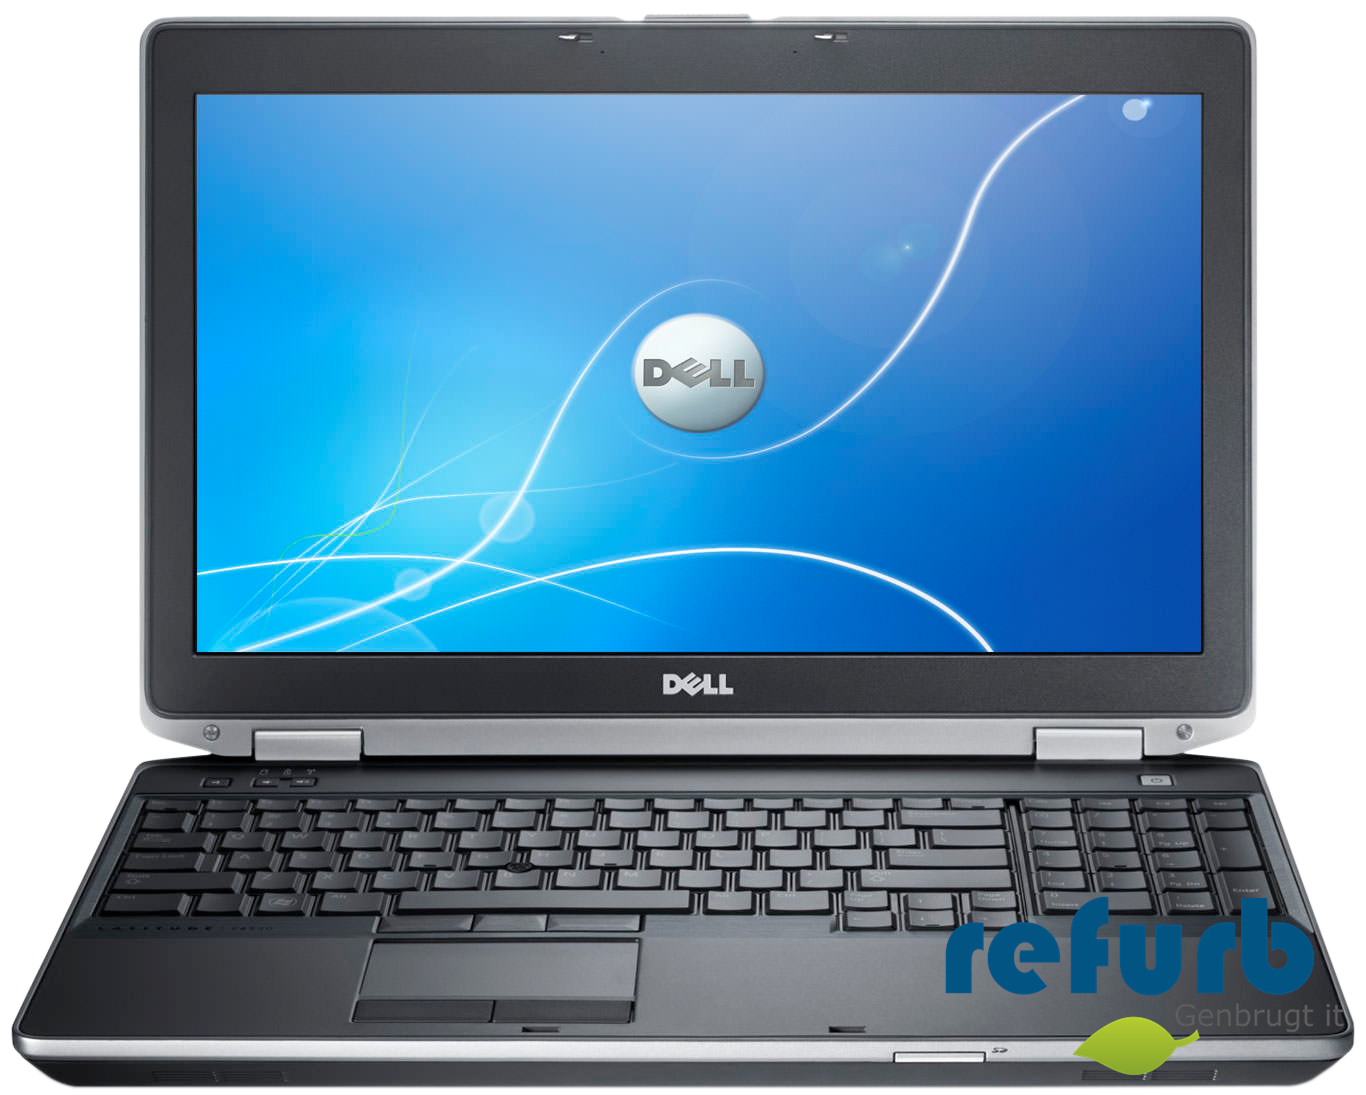 Dell Dell latitude e6530 fra refurb